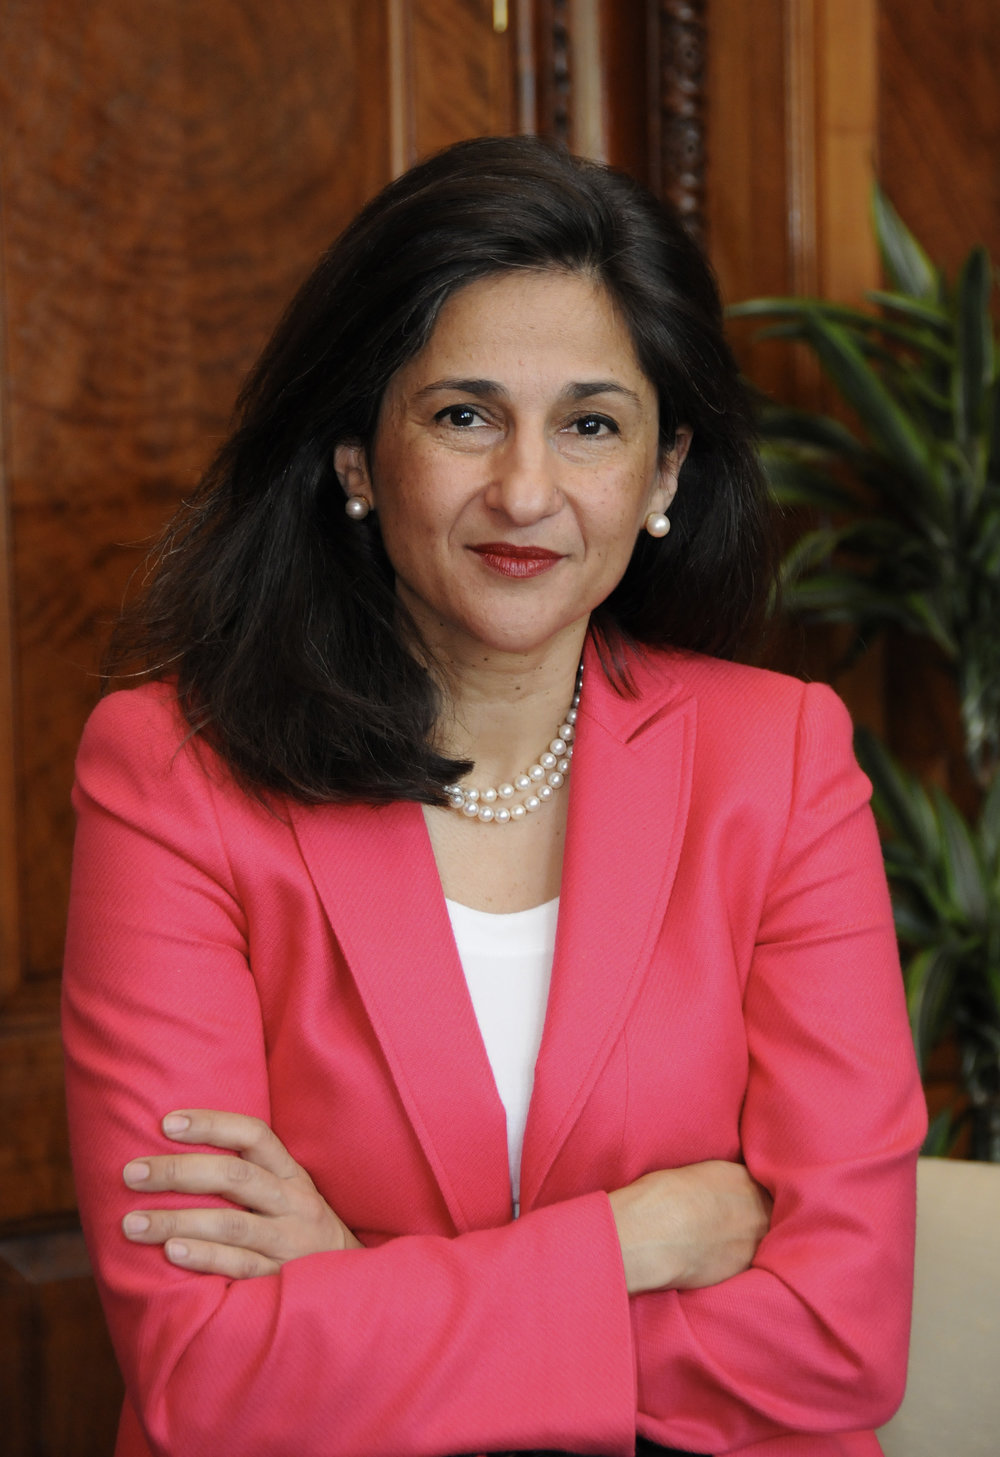 Nemat Shafik - British-American economist, former Deputy Governor of the Bank of England, current director of the London School of Economics